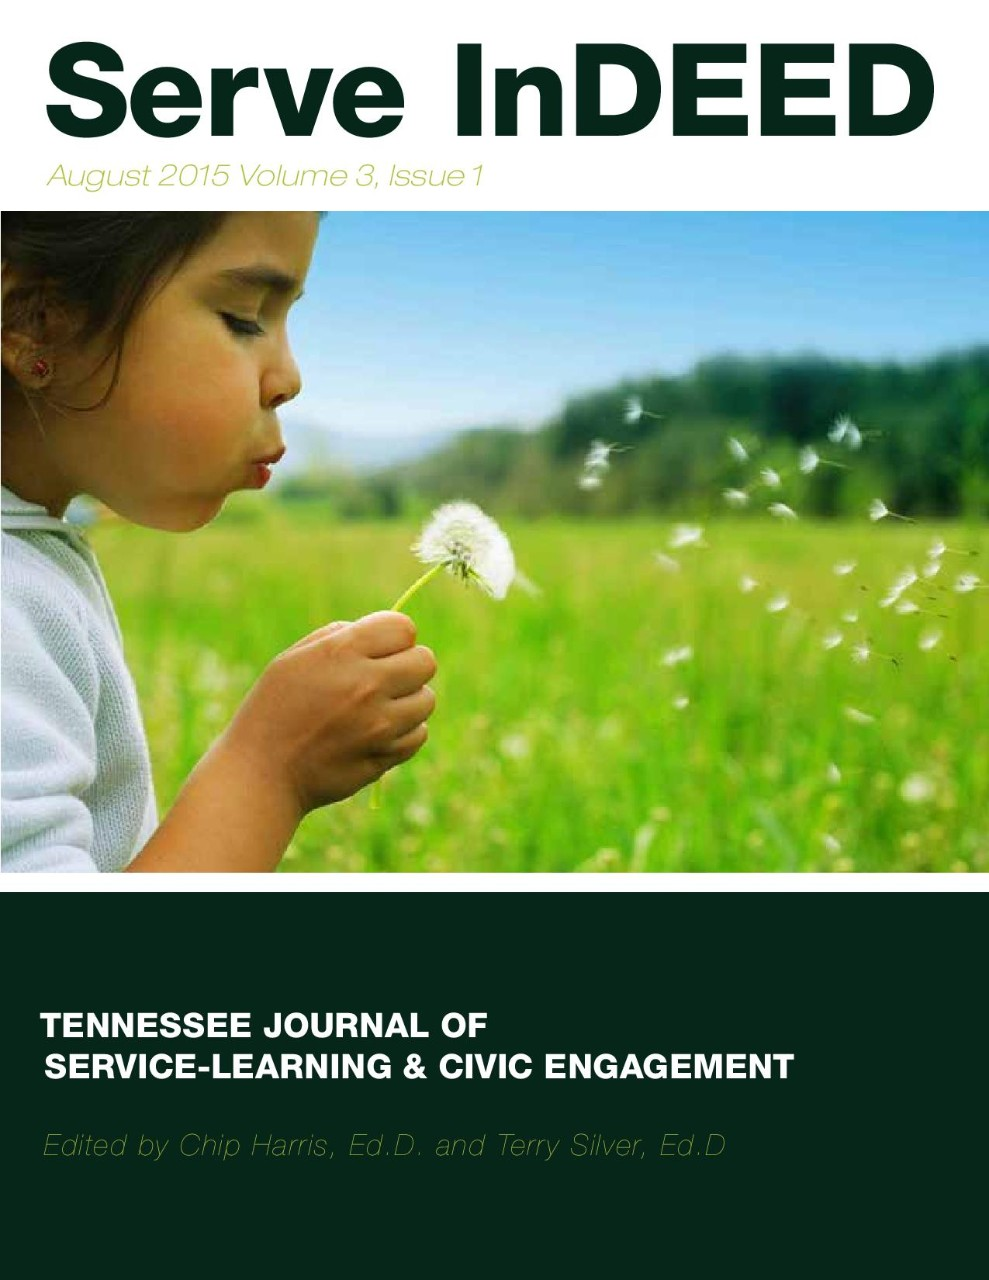 Tennessee Journal of Service-Learning and Civic Engagement Vol3